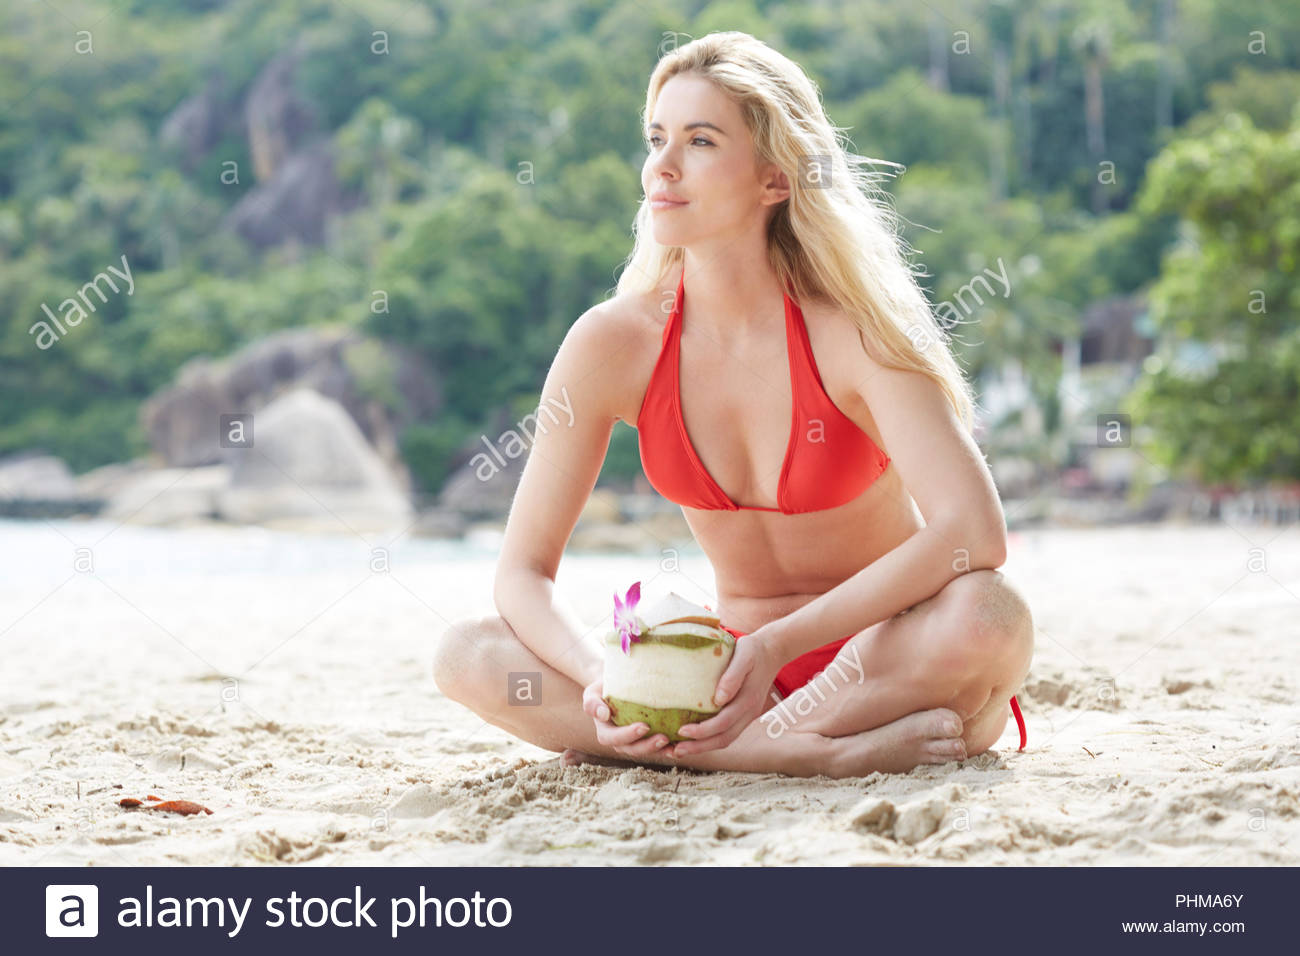 Young woman holding coconut drink on beach Stock Photo